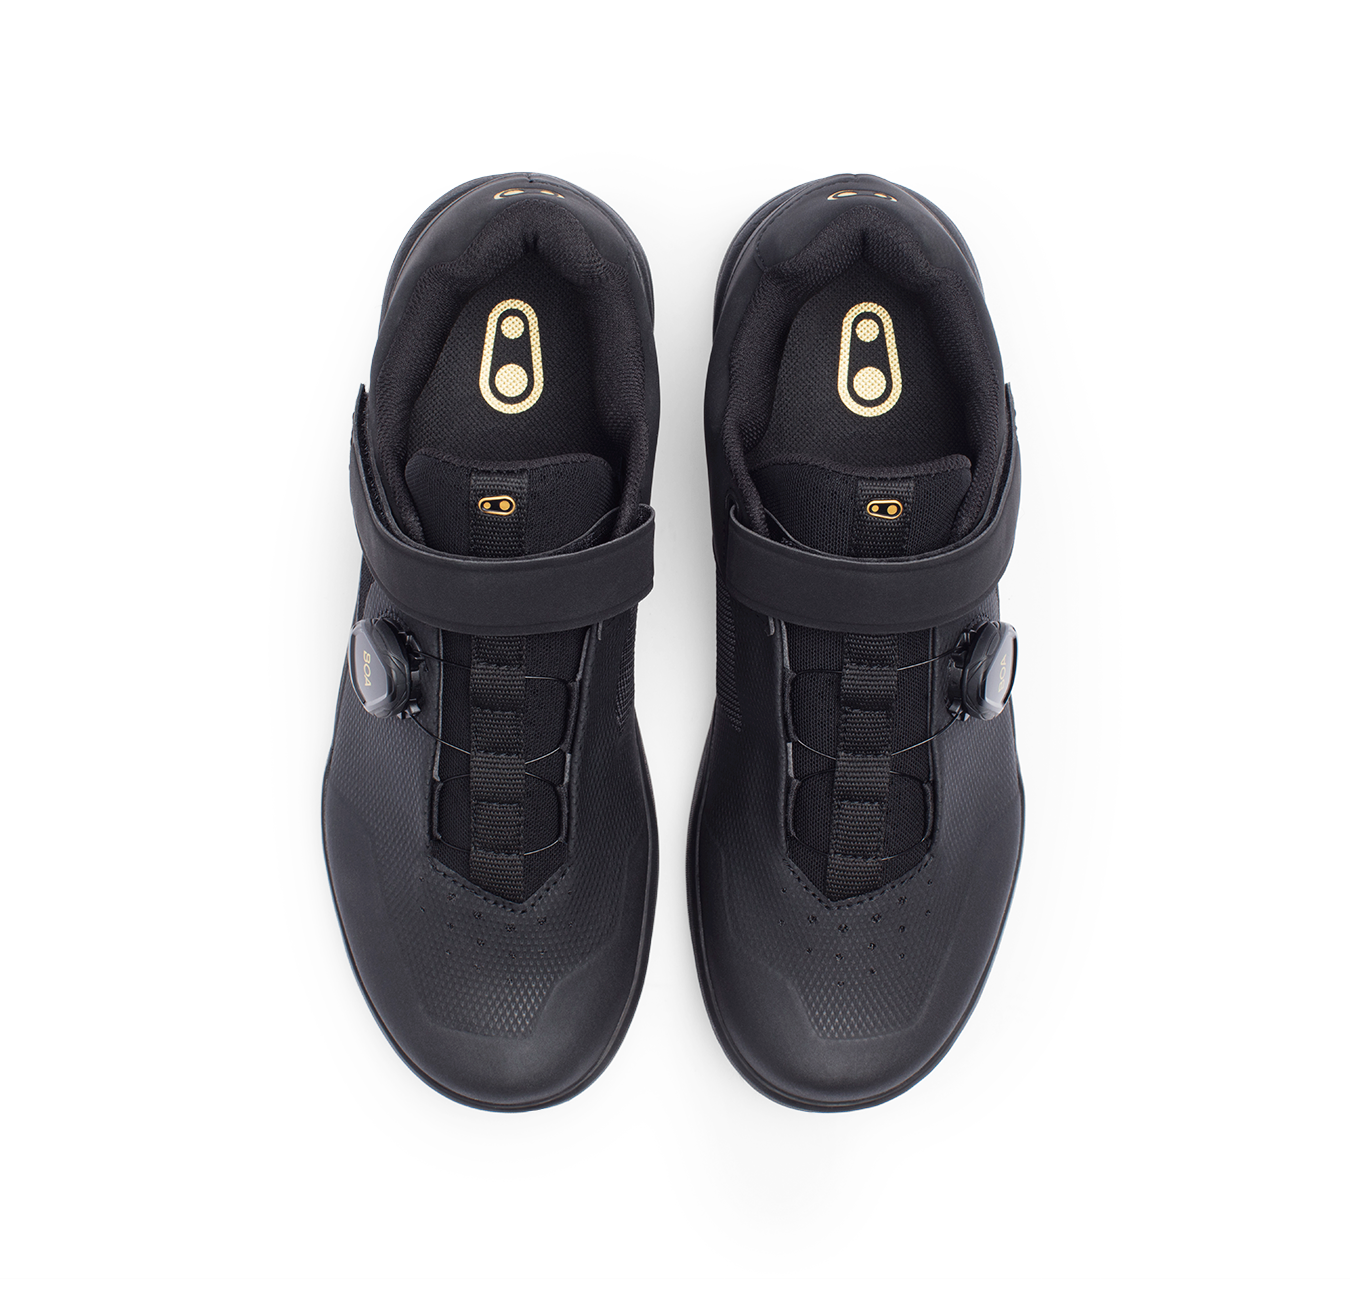 Crank Brothers Mountain Shoes STAMP BOA BLACK//GOLD//BLACK 9.0